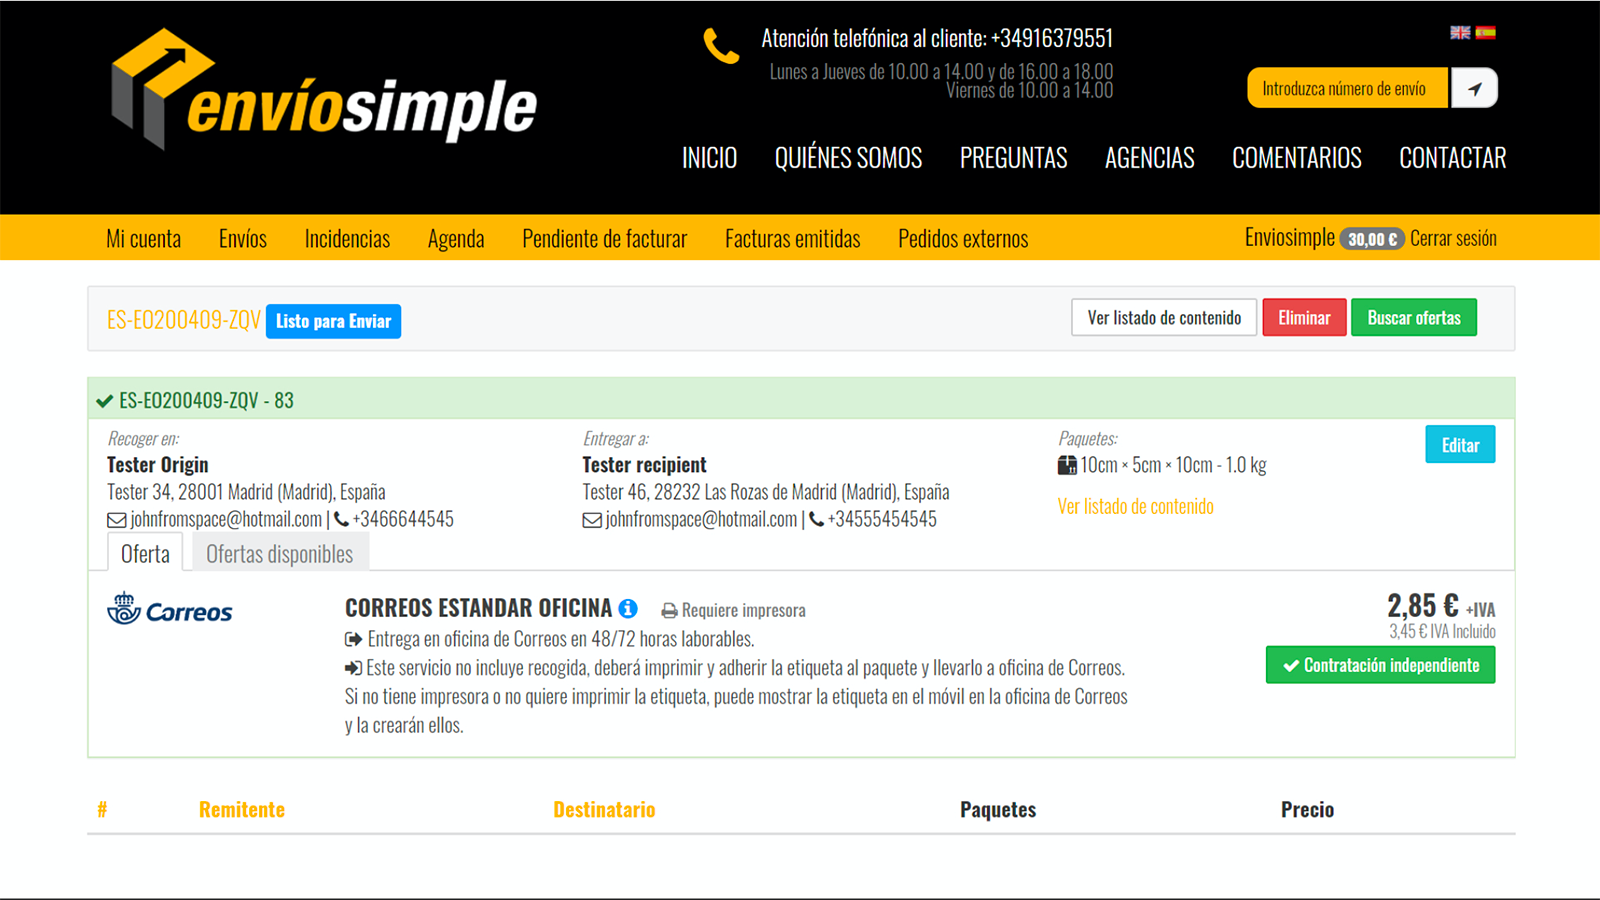 You can edit or change shipping services.